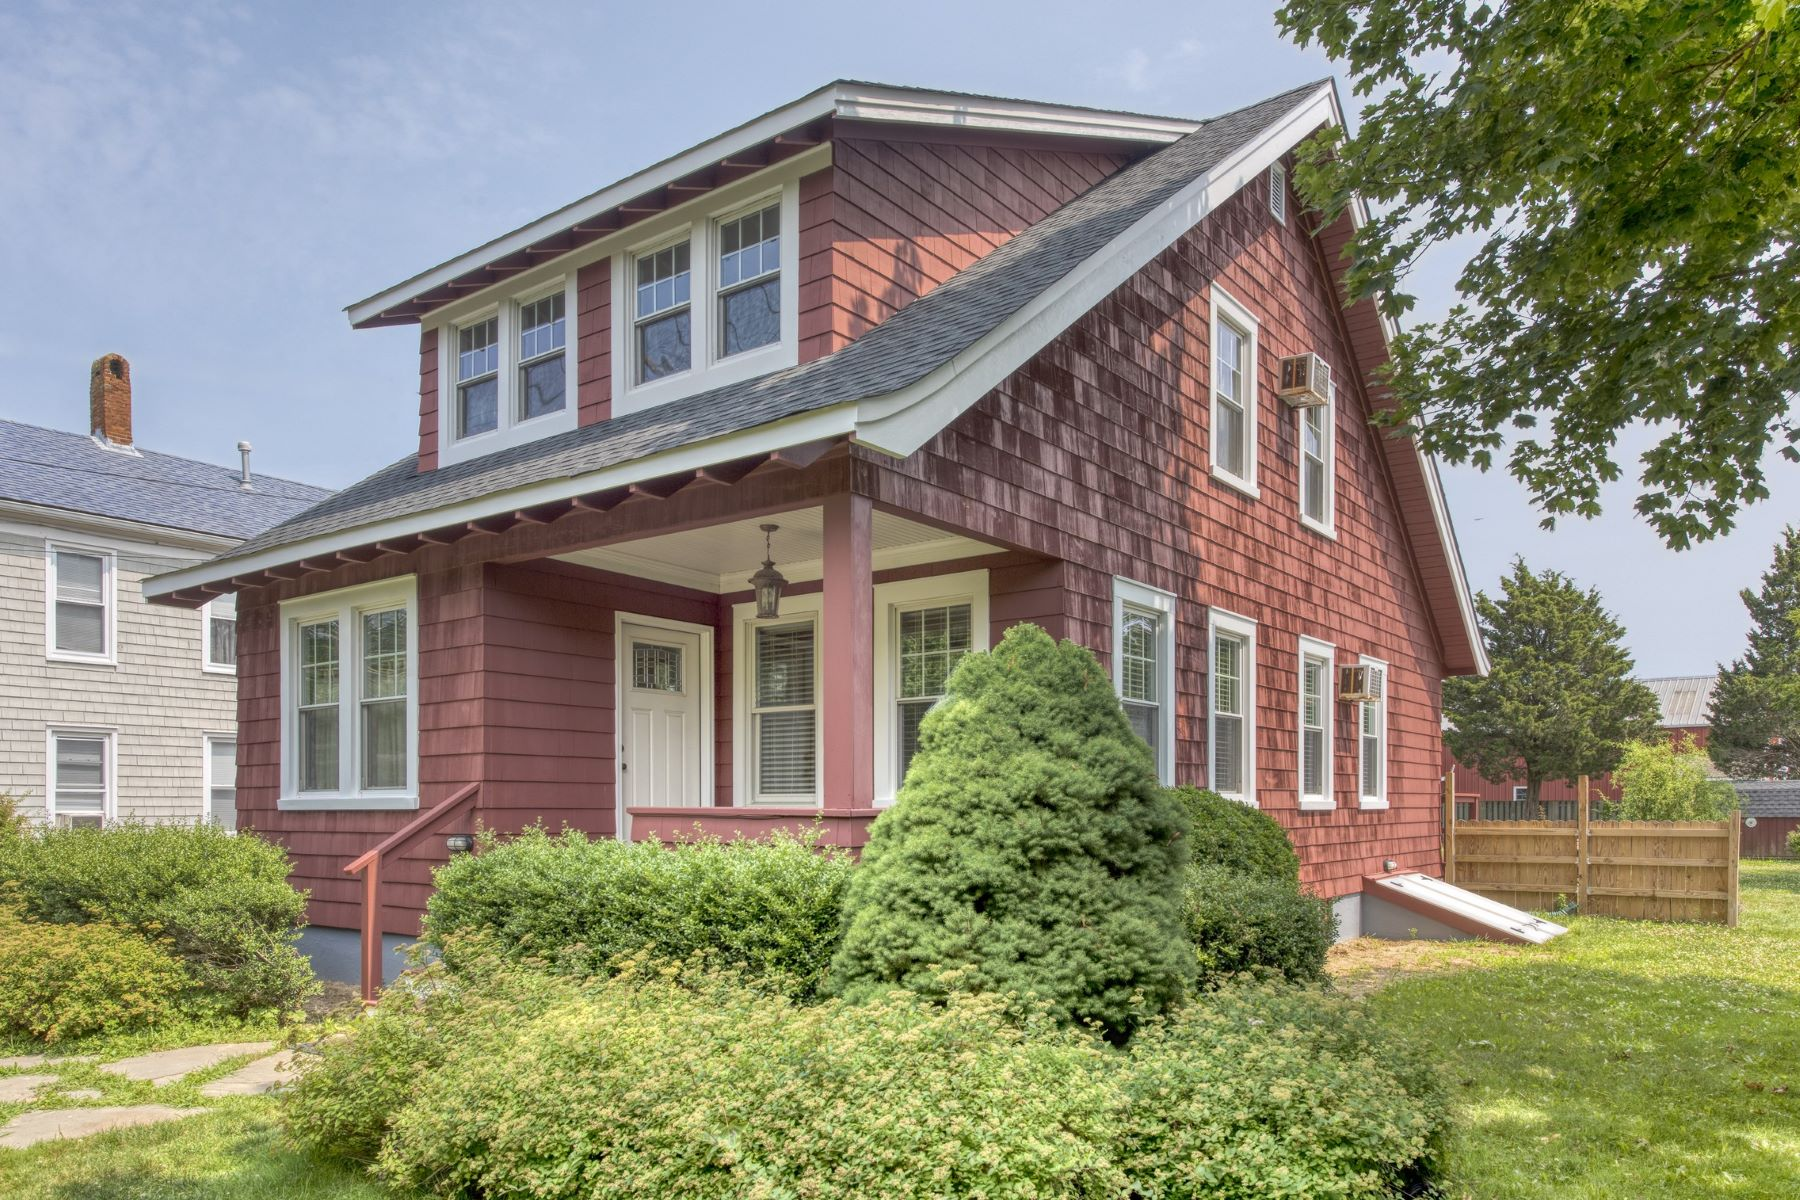 Single Family Homes for Sale at Orient 23530 Main Rd Orient, New York 11957 United States